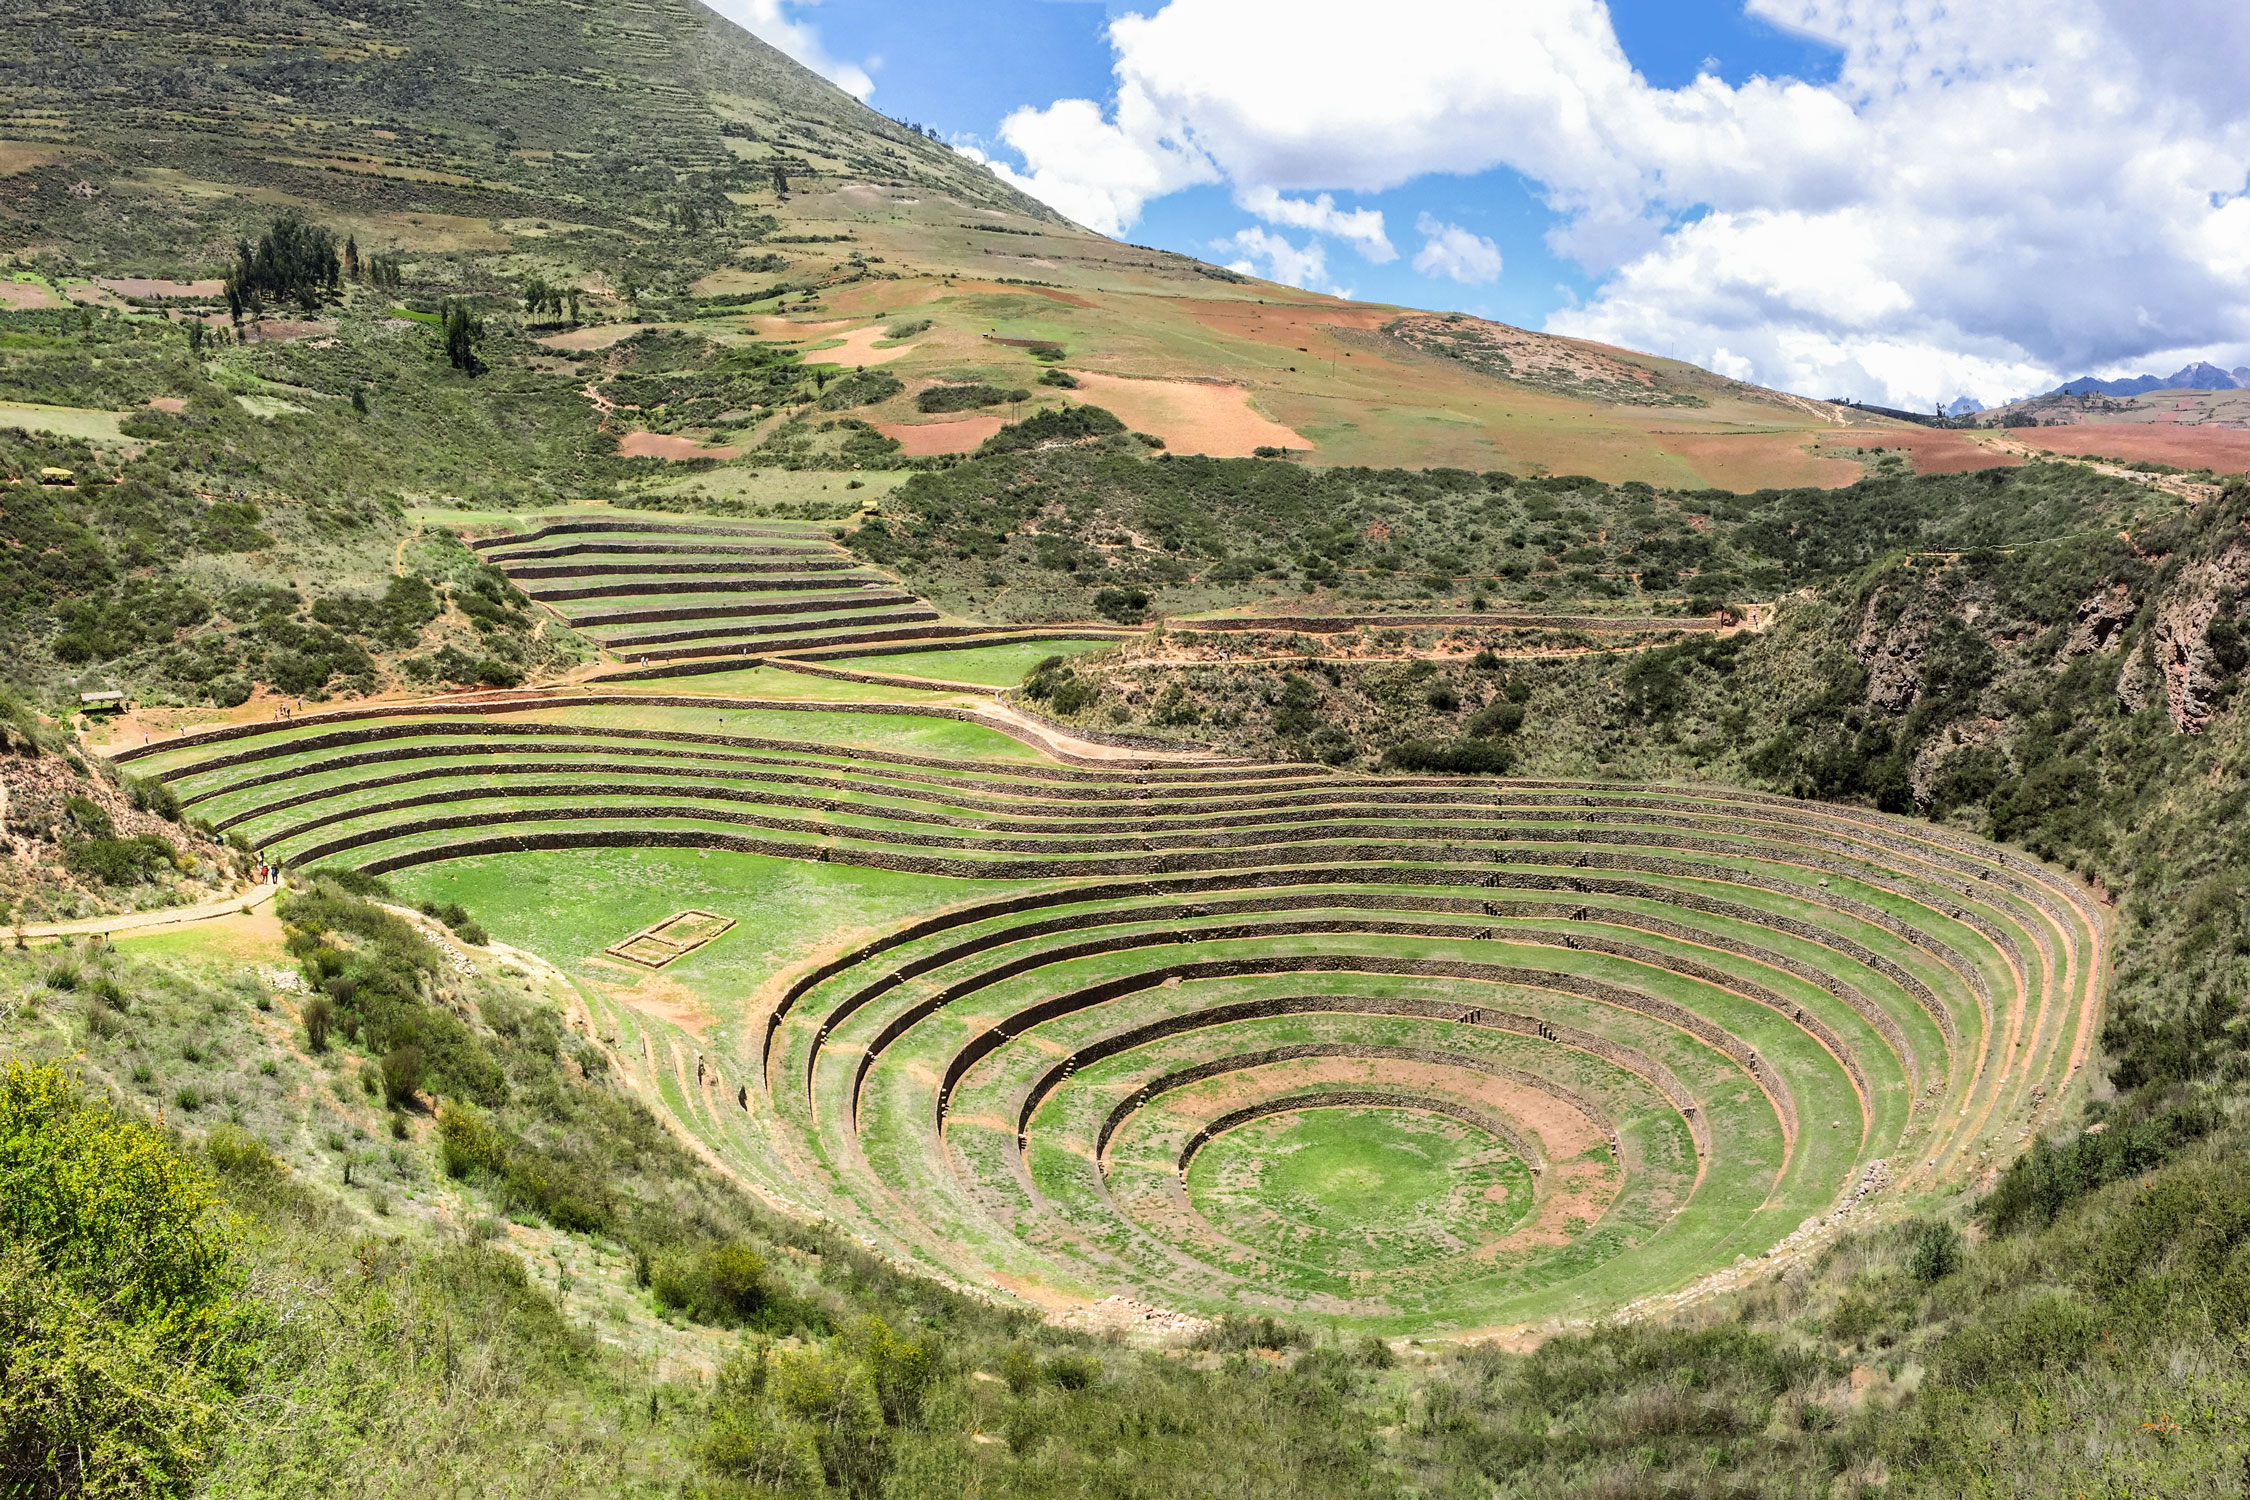 Moray-sacred-valley-peru-wander-south.jpg